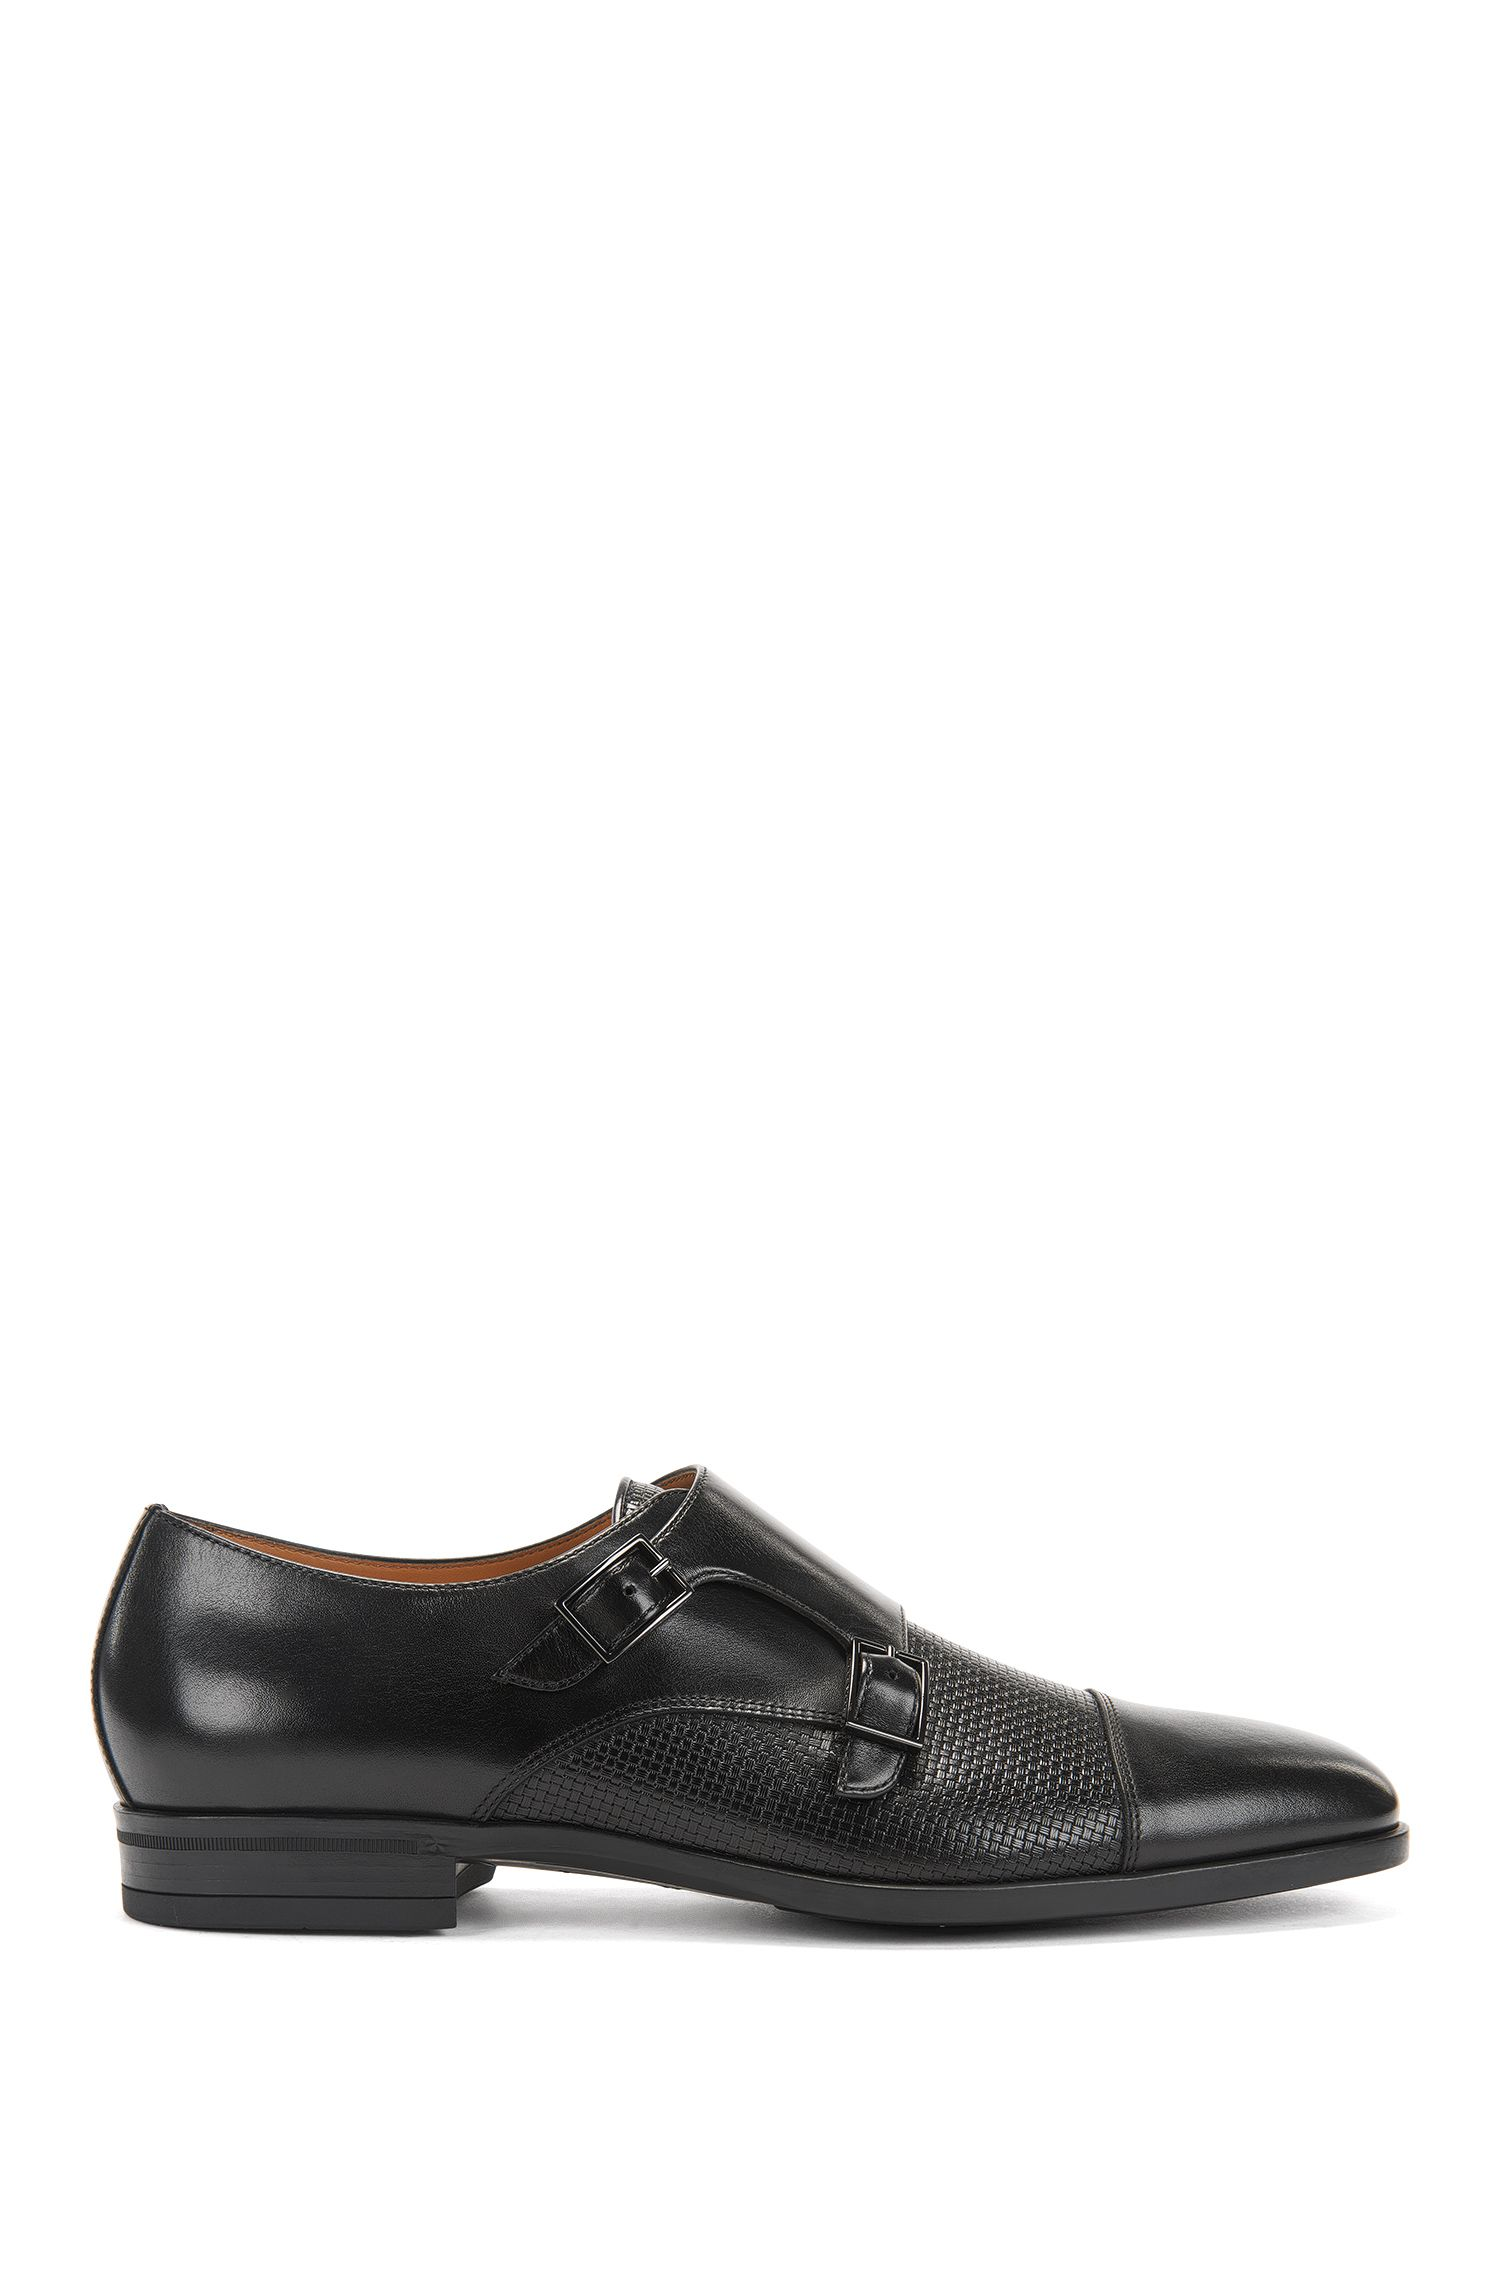 Double-monk shoes in plain and embossed leather